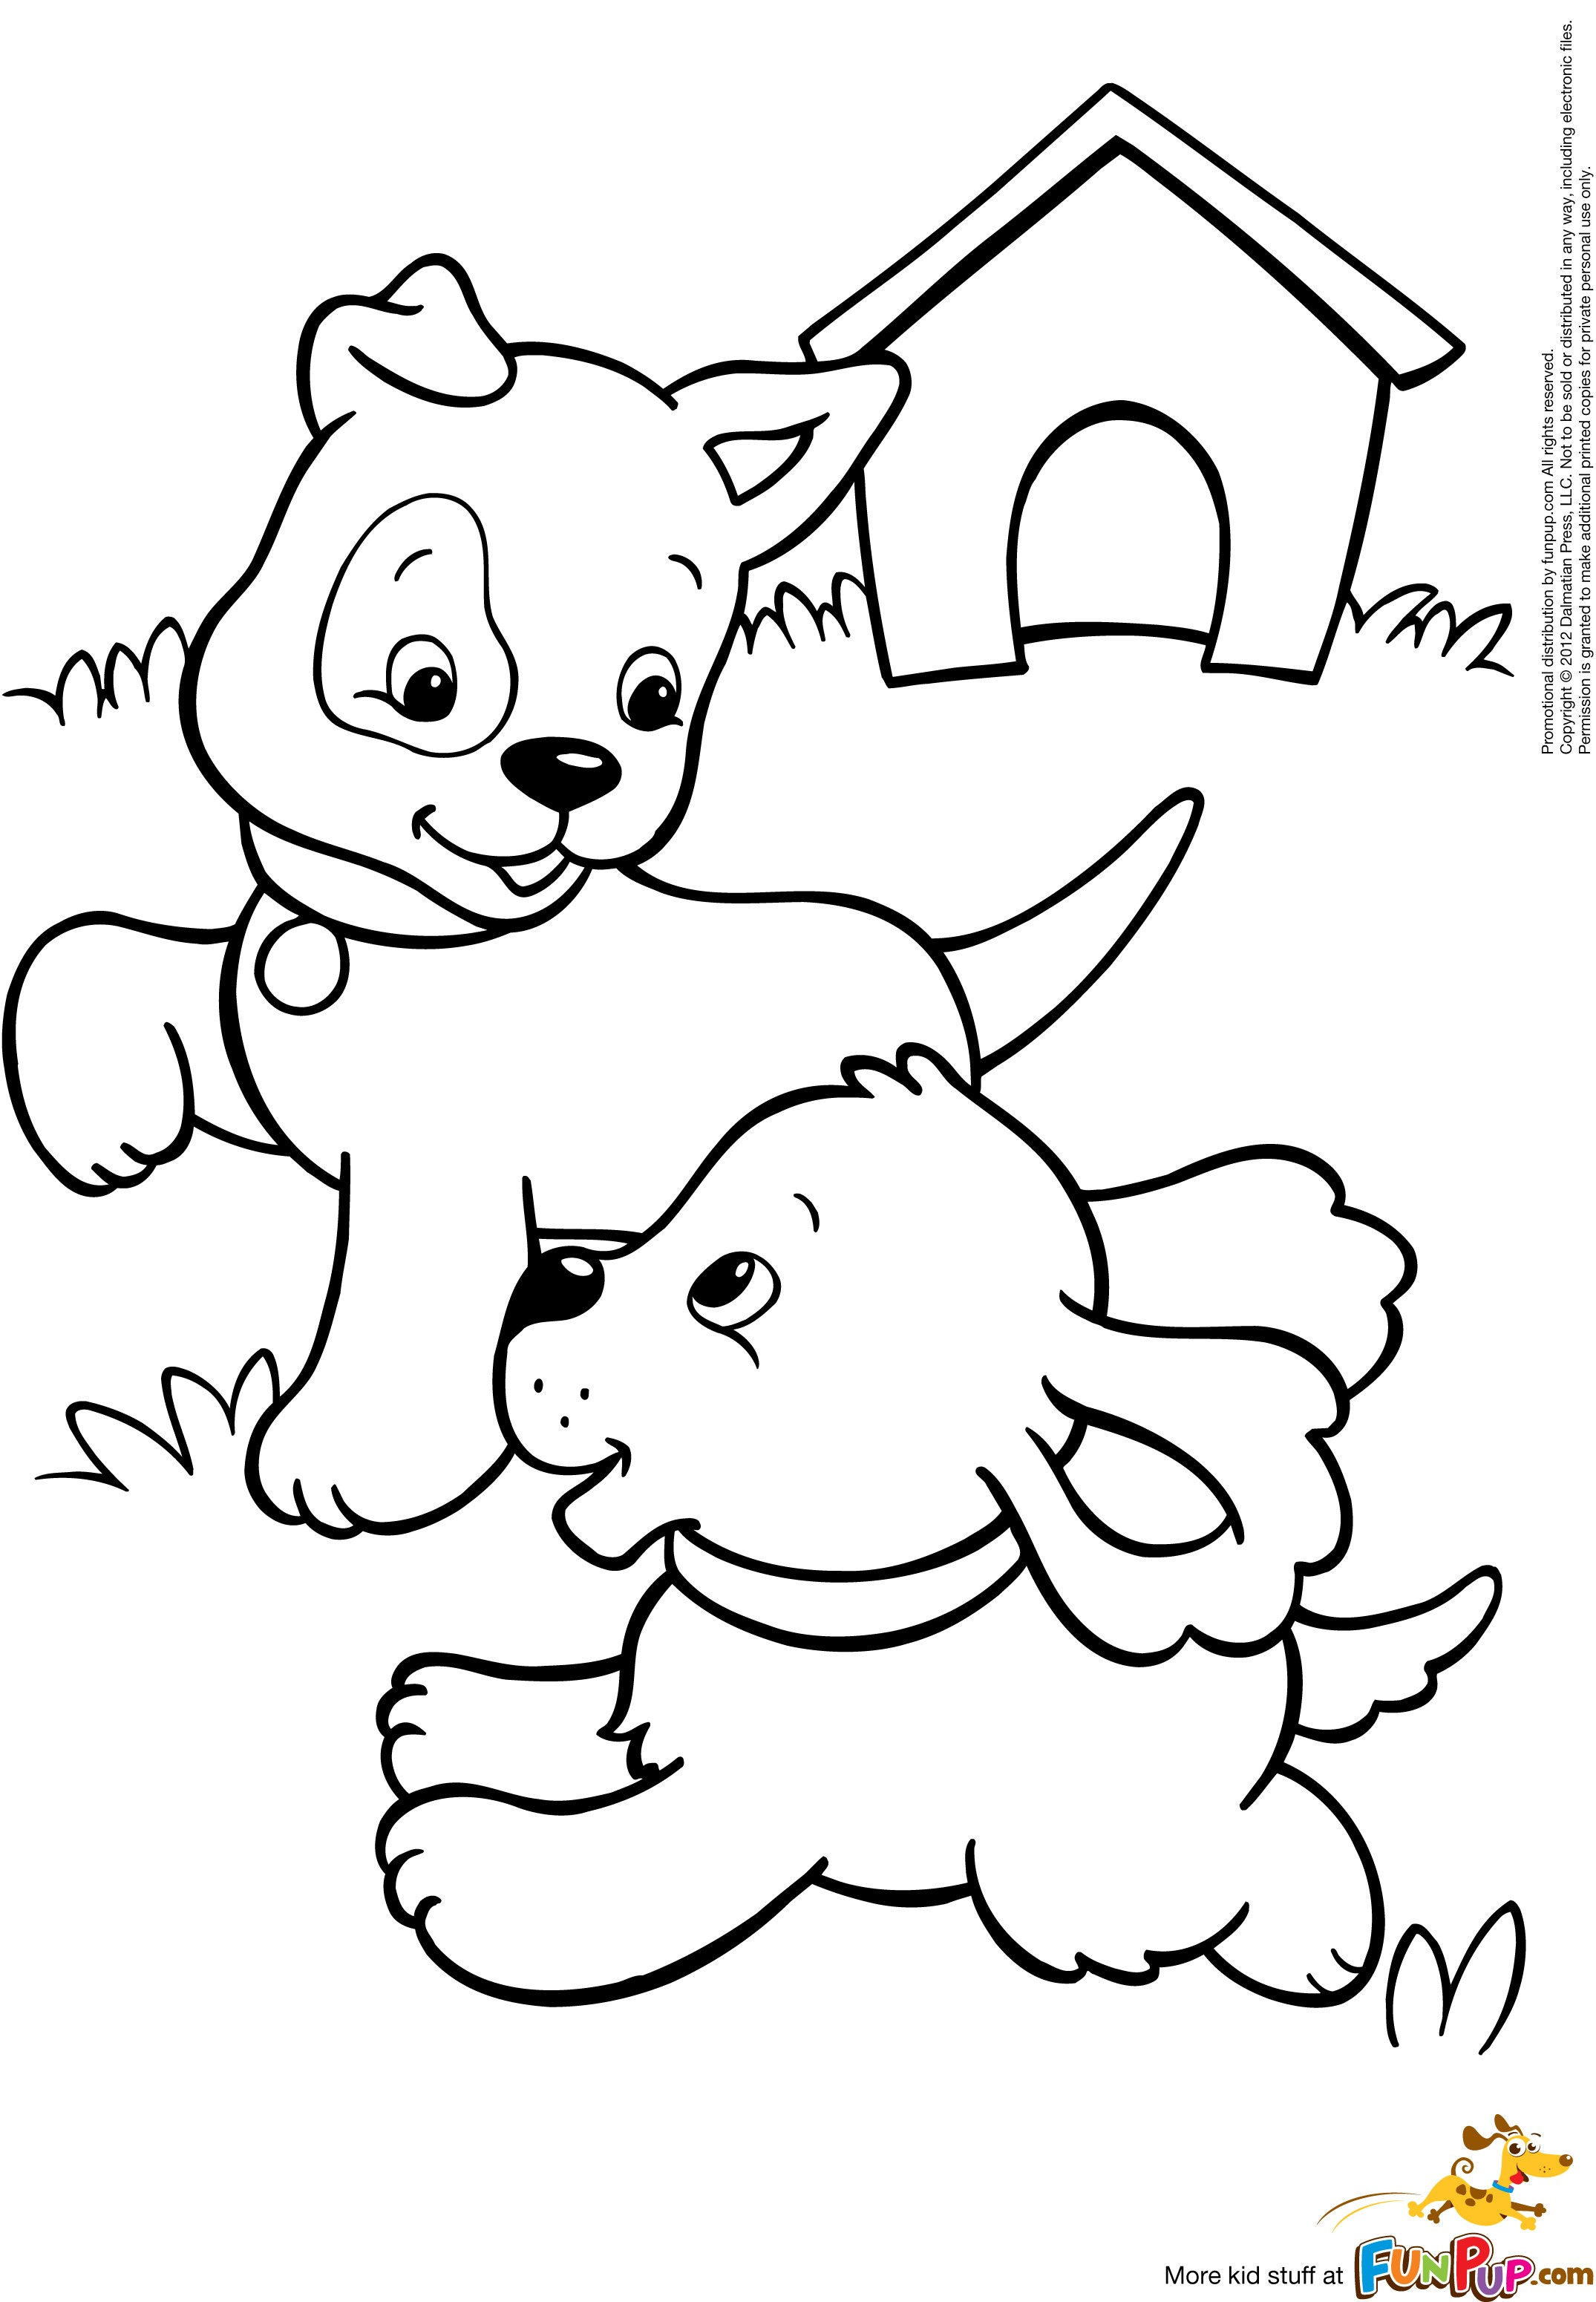 pictures of puppies to color free printable puppies coloring pages for kids pictures of puppies color to